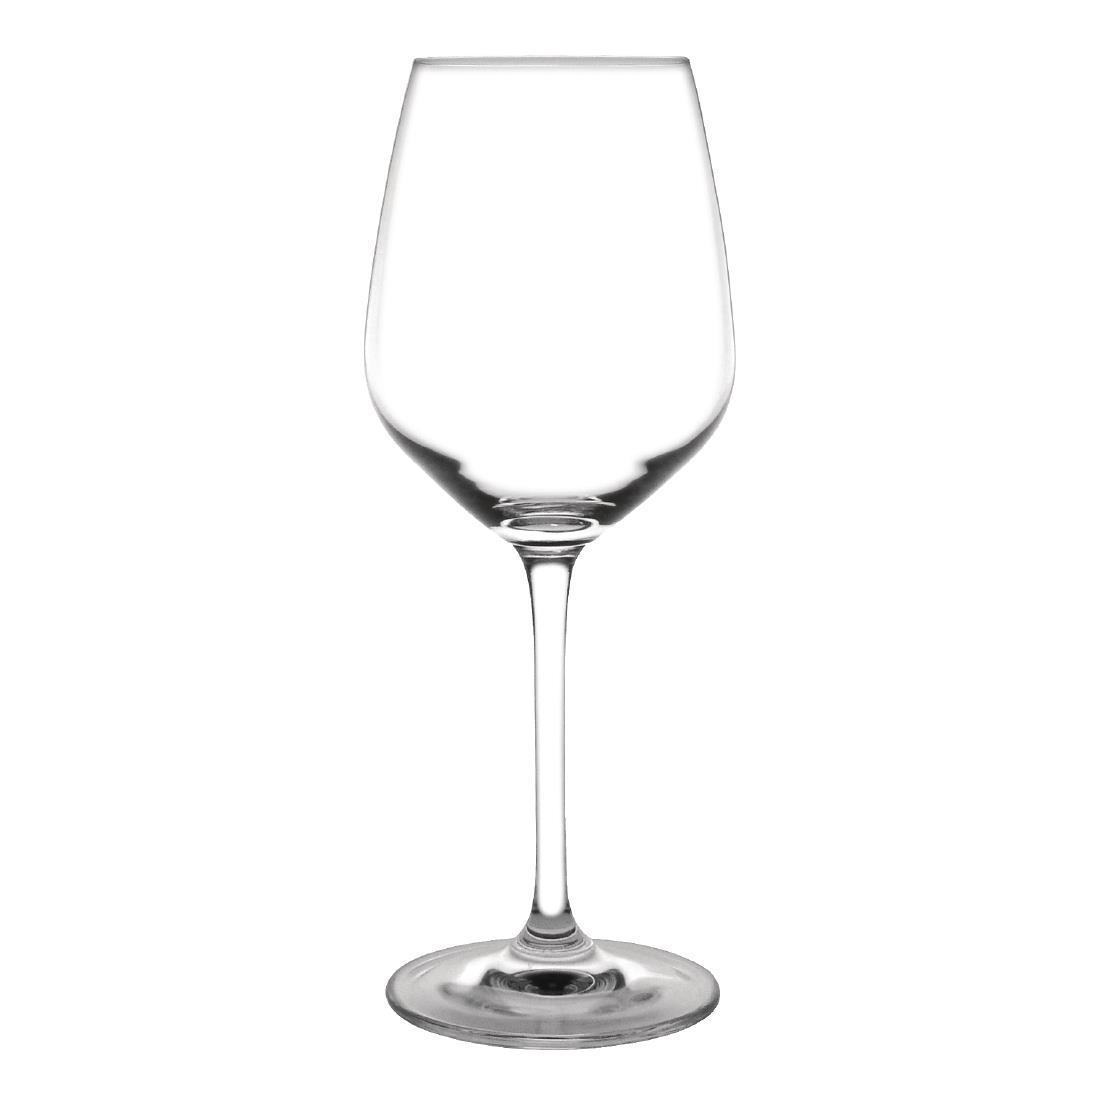 Olympia Chime Crystal Wine Glasses 365ml